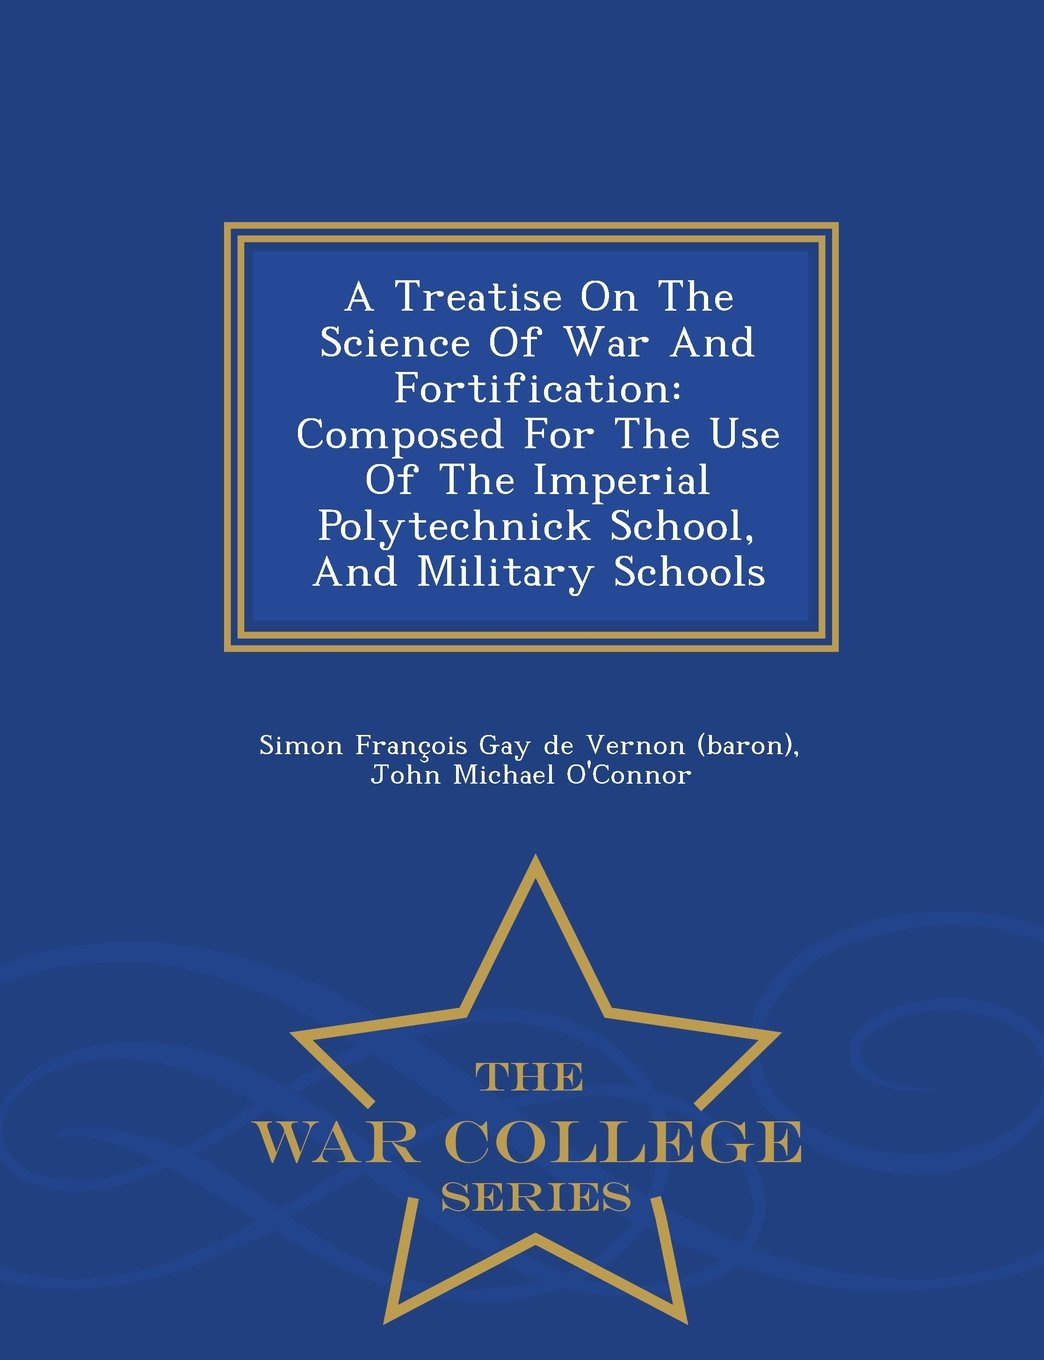 A Treatise On The Science Of War And Fortification: Composed For The Use Of The Imperial Polytechnick School, And Military Schools - War College Series (Afrikaans Edition) pdf epub